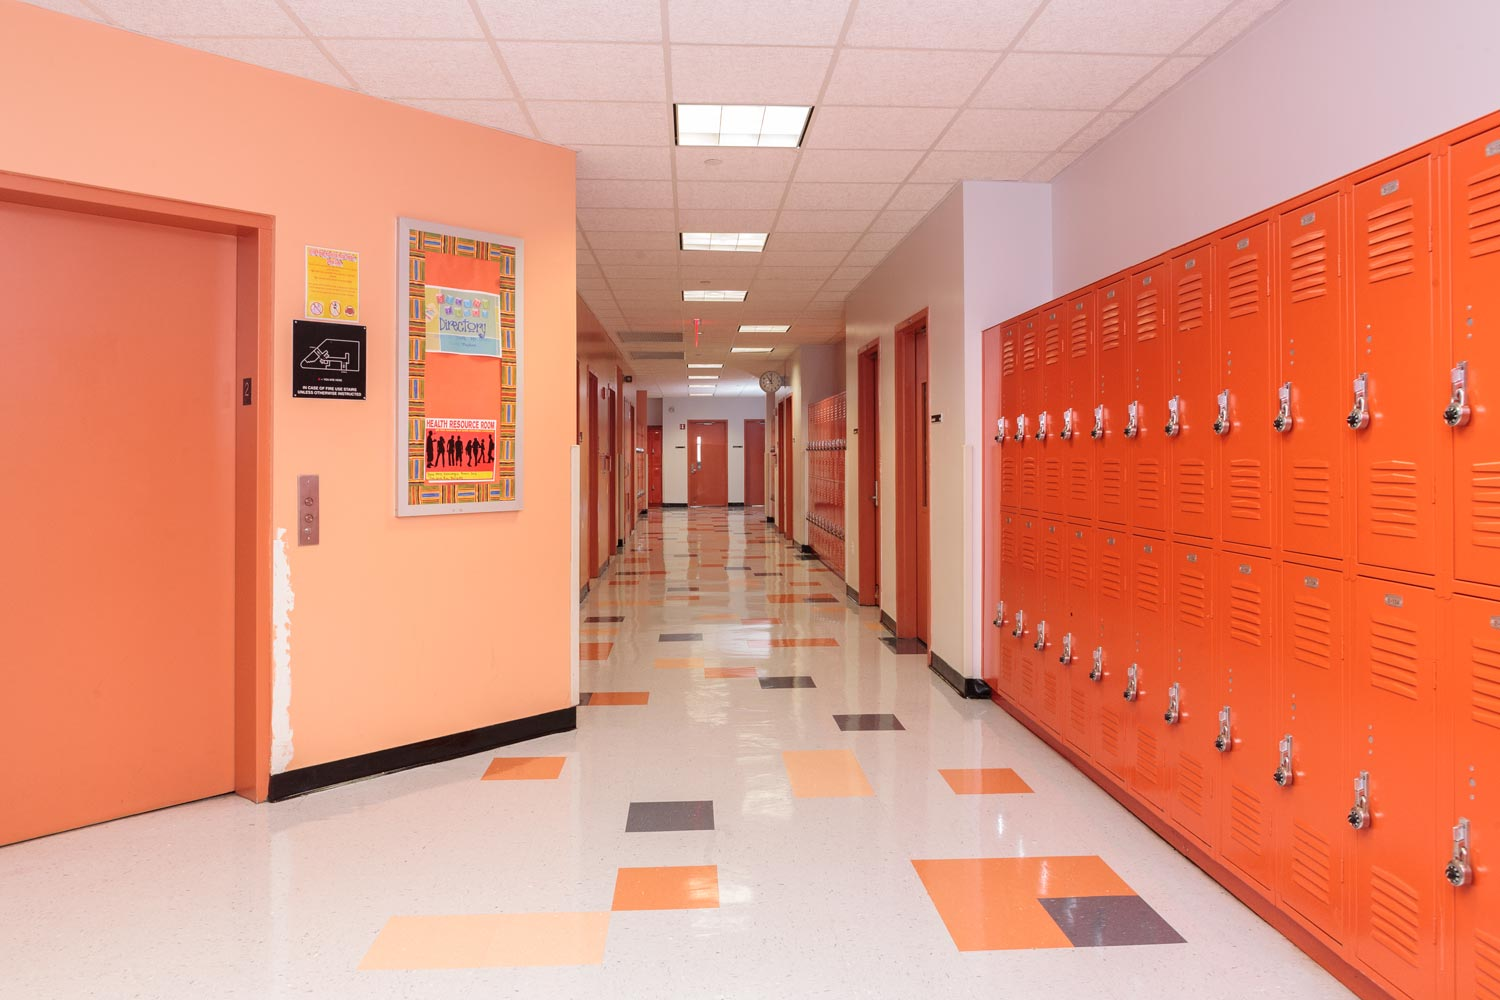 In corridors and classrooms, color is used as a device to designate the different floors.